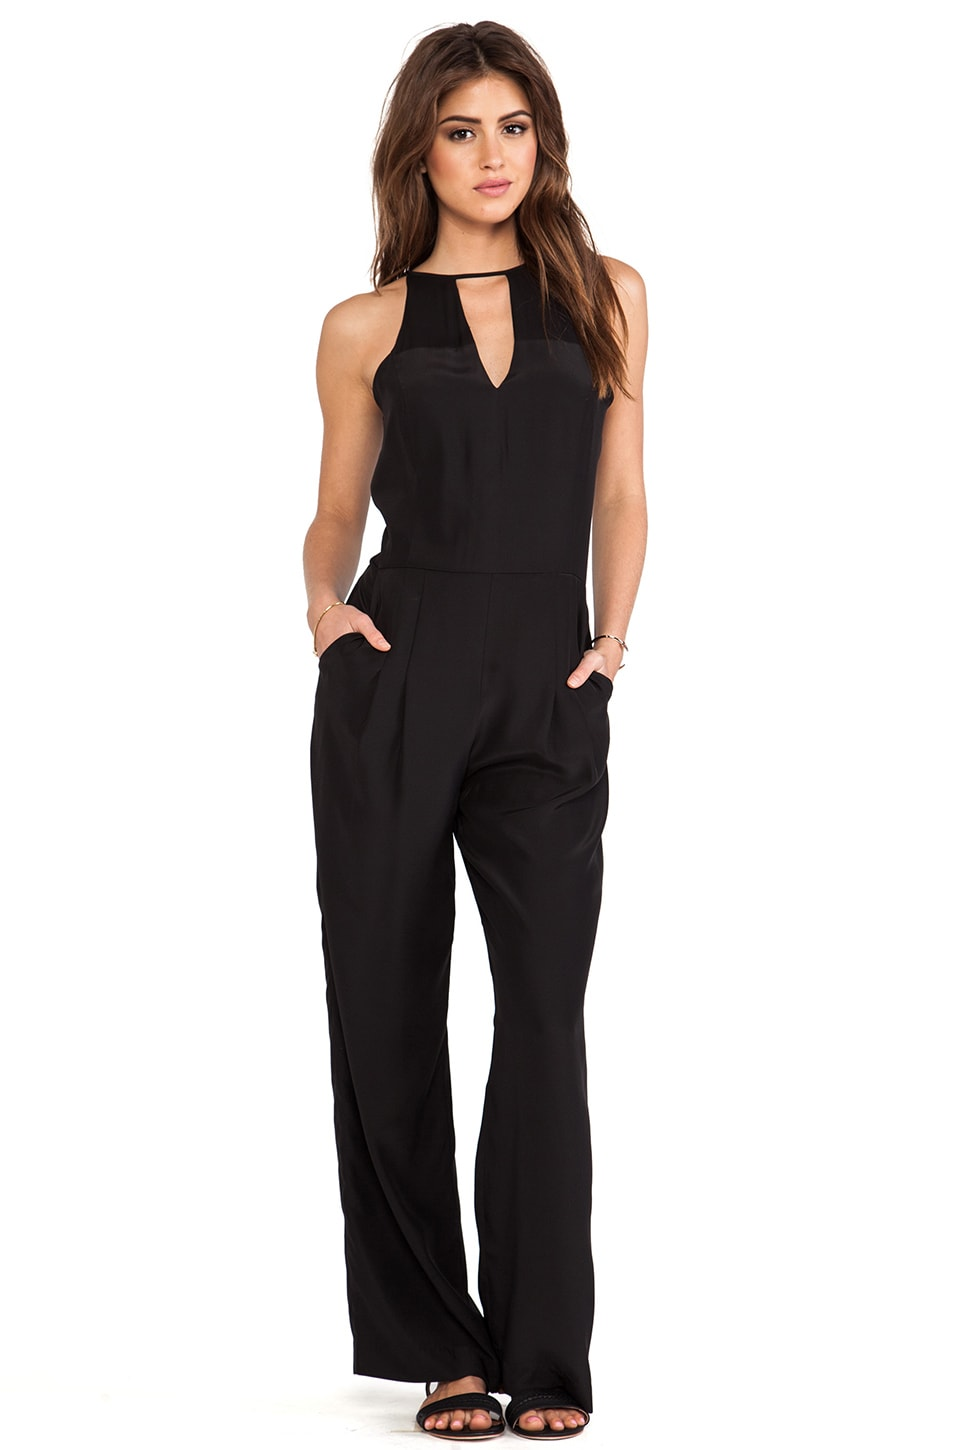 Parker Samira Jumpsuit in Black